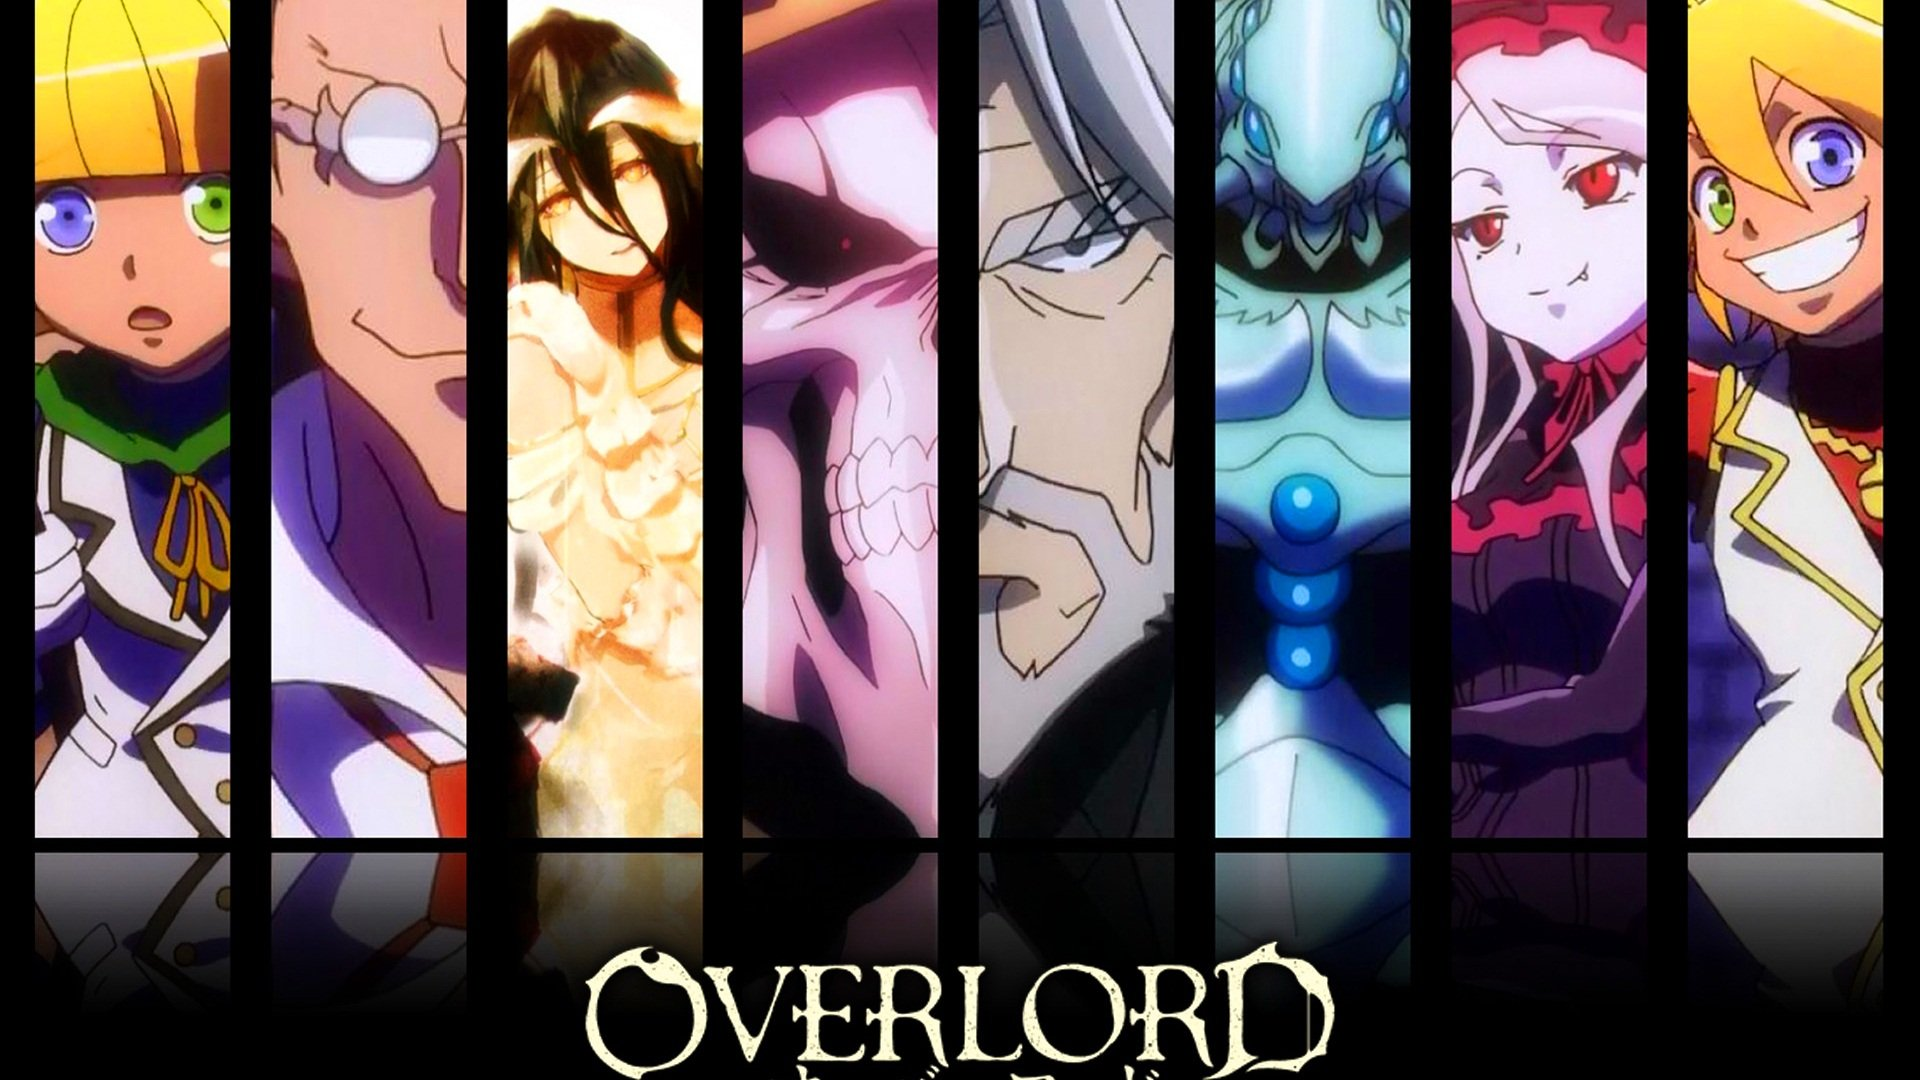 Overlord Season 4 will Renewed after the Light Novel Series